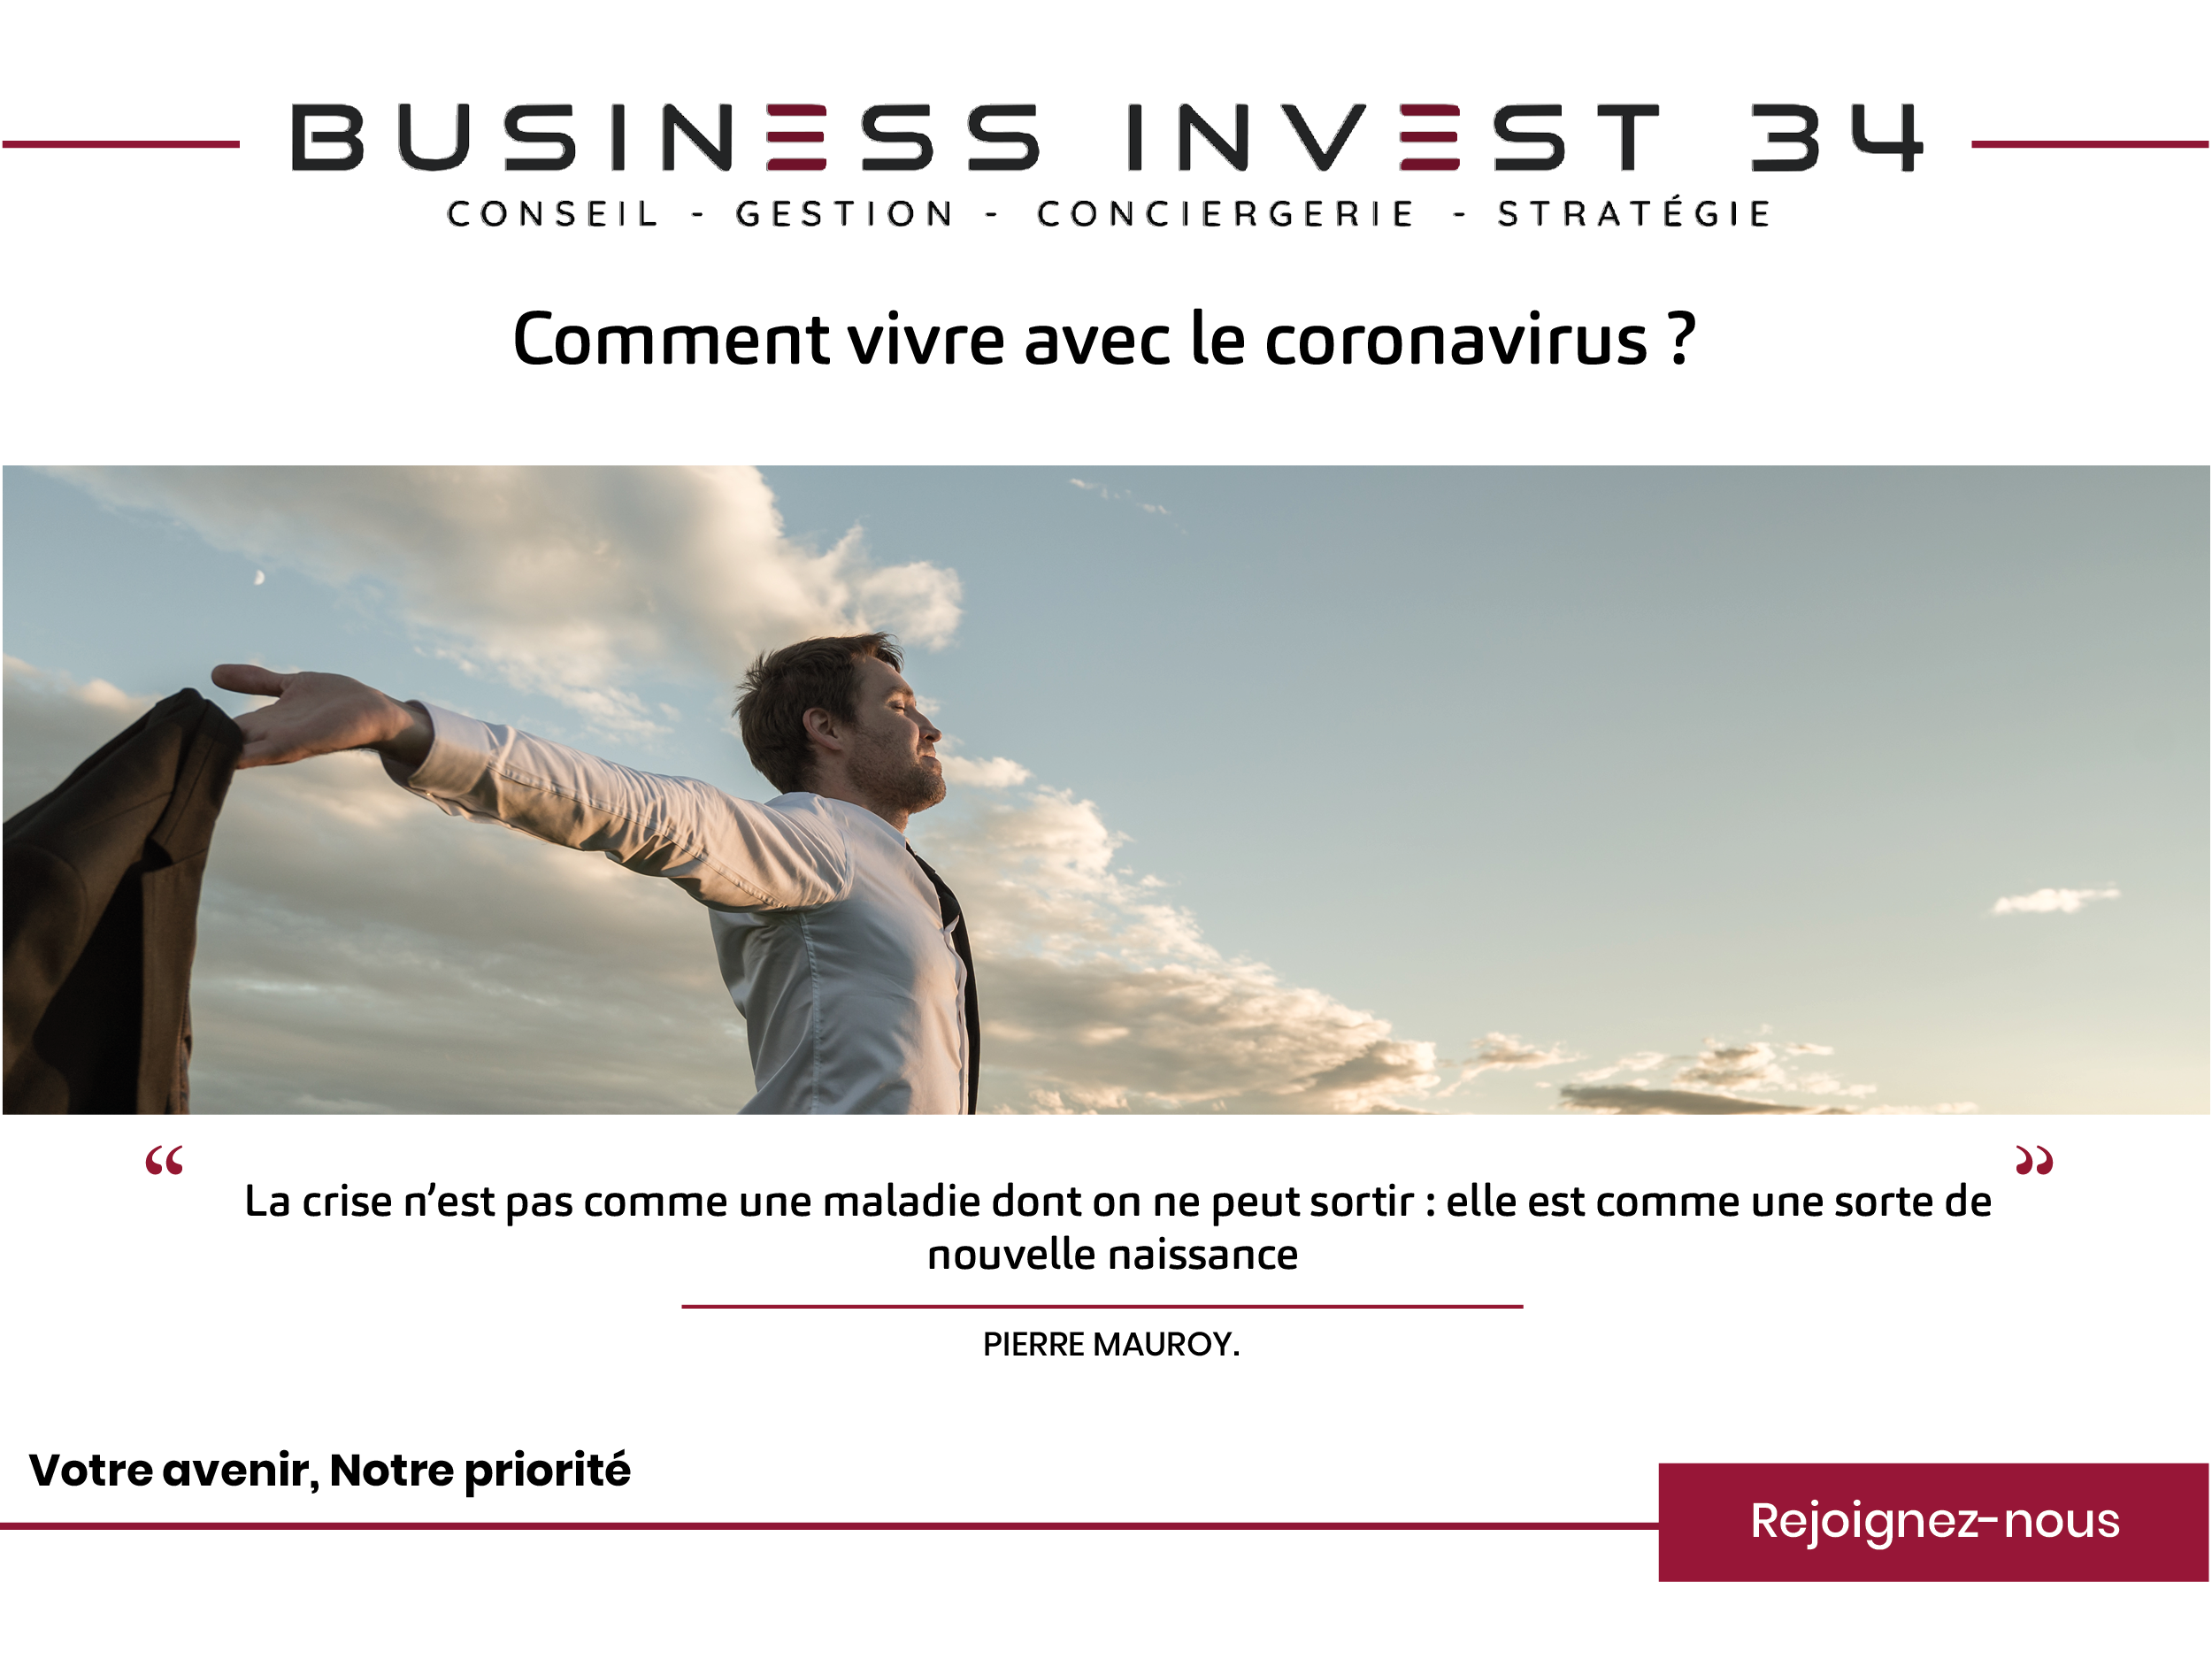 business invest 34